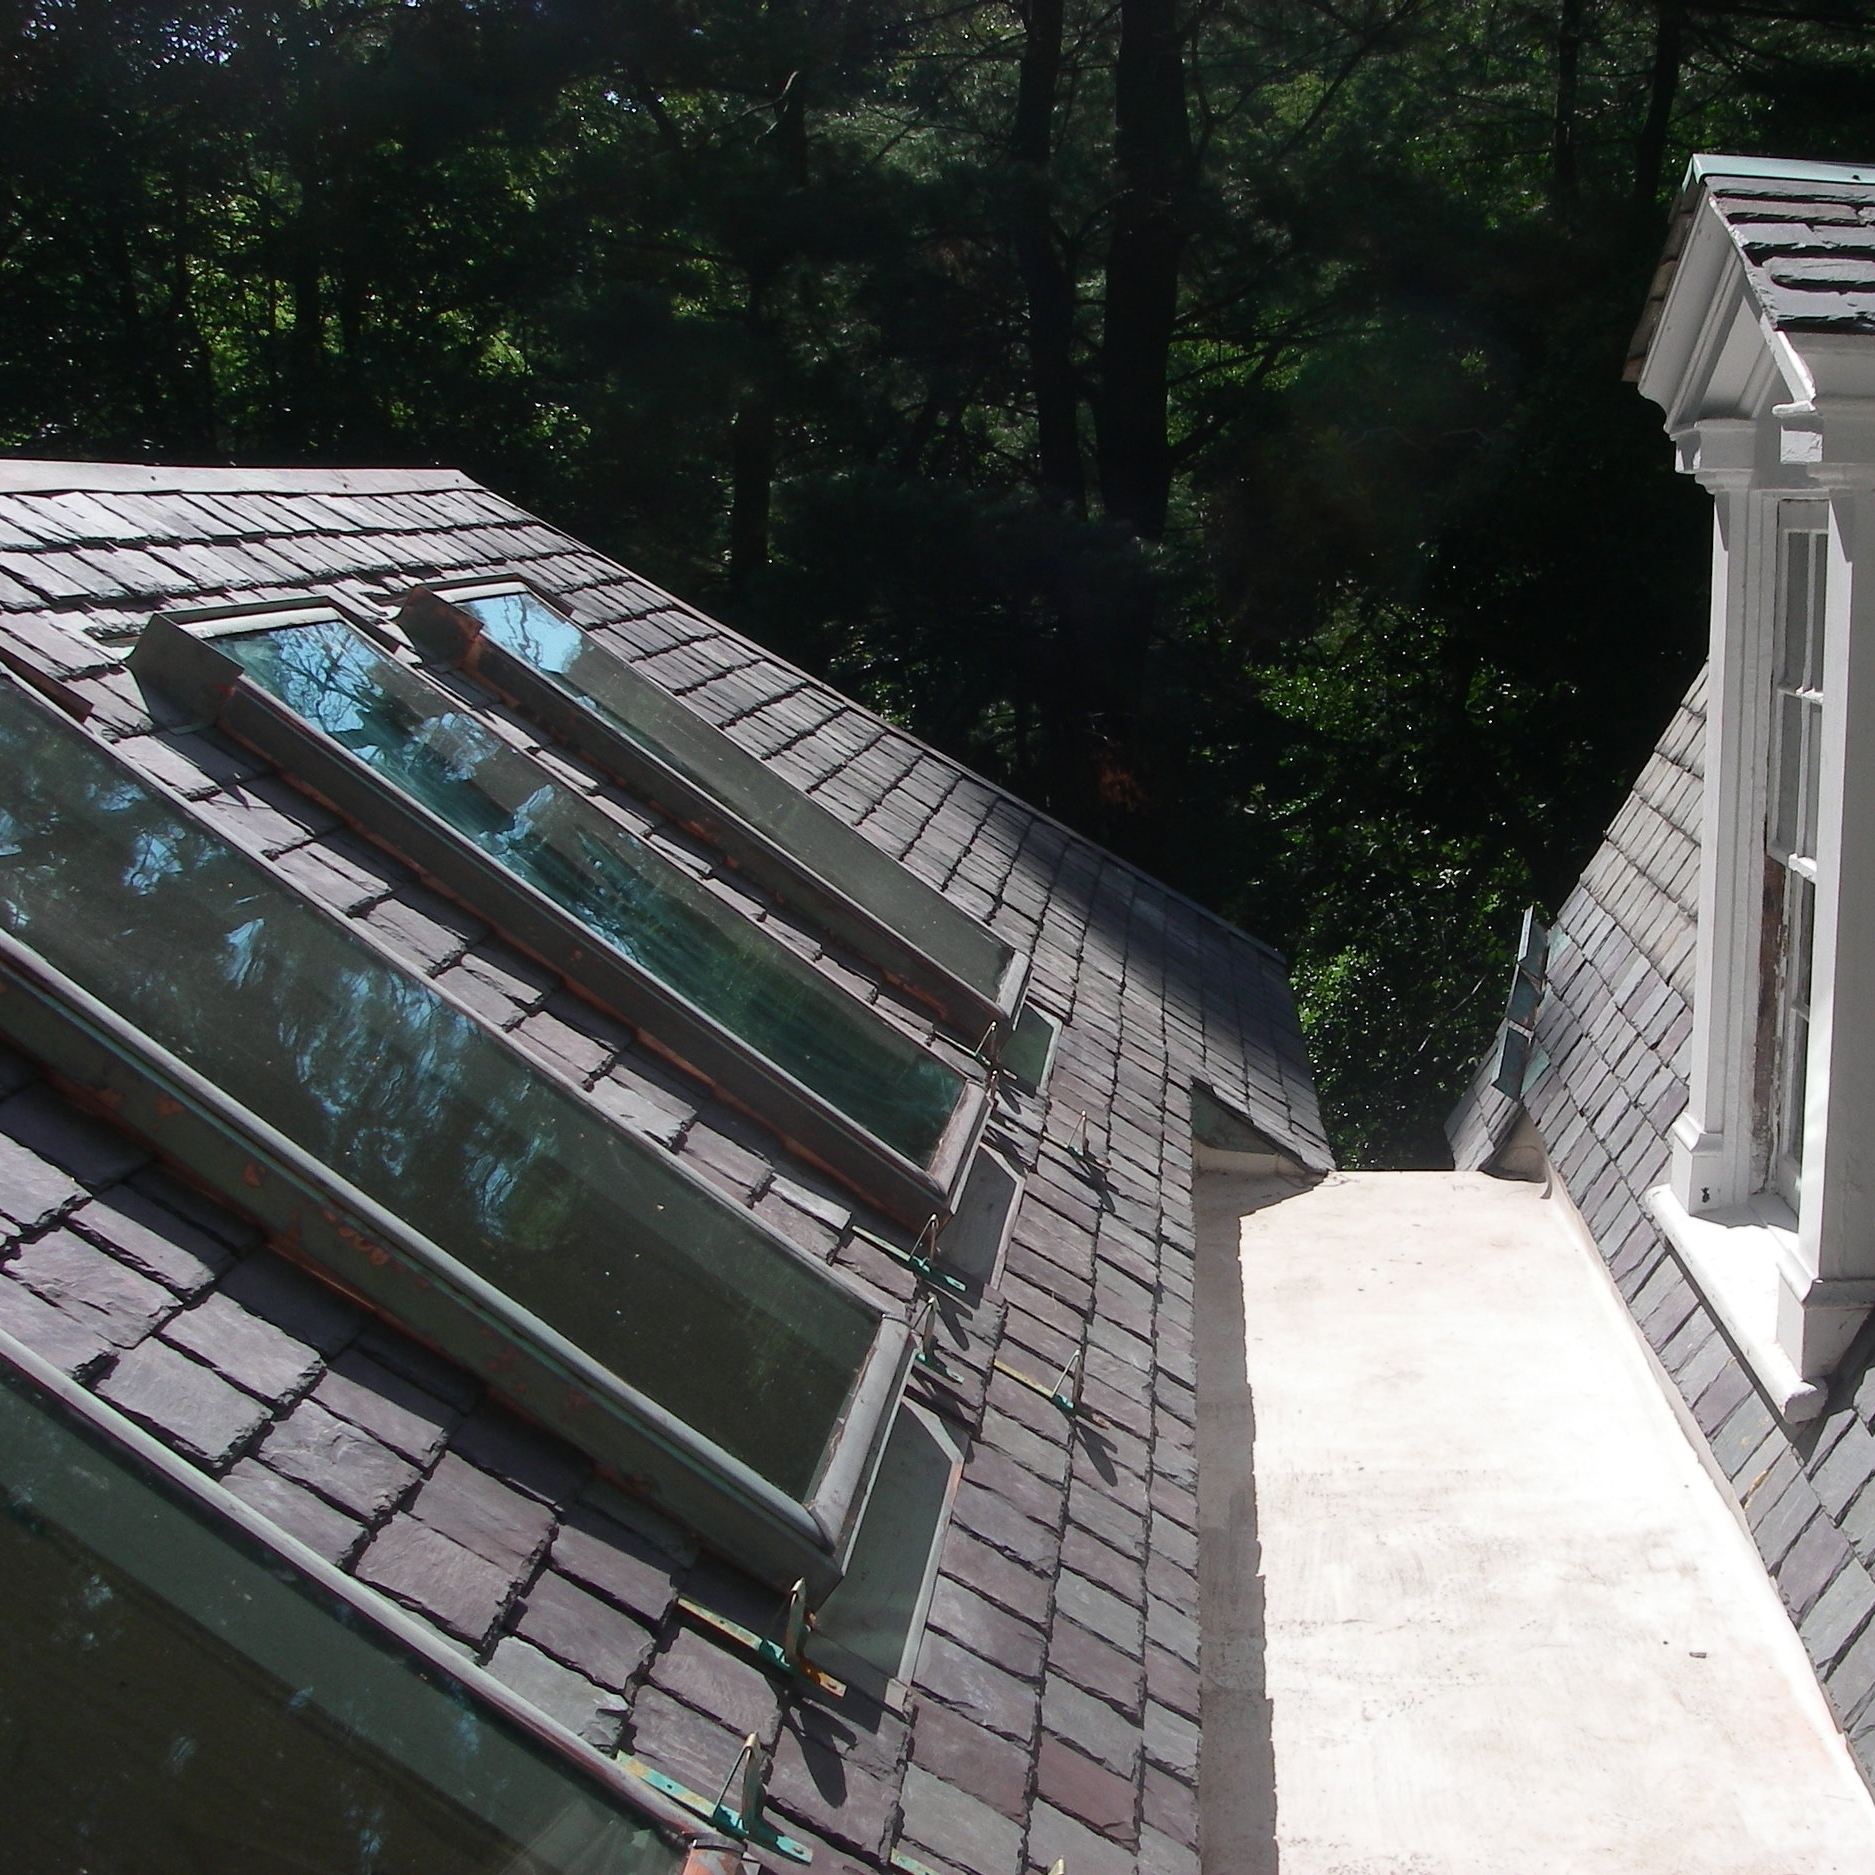 On the garden side of this colonial Mill Creek property, which fell under the purview of the Lower Merion Historical Commission, we installed the TPO flat roof membrane, slate, copper flashing / ridge, as well as these gorgeous copper-clad VELUX skylights –a custom design that we had to import from Denmark.